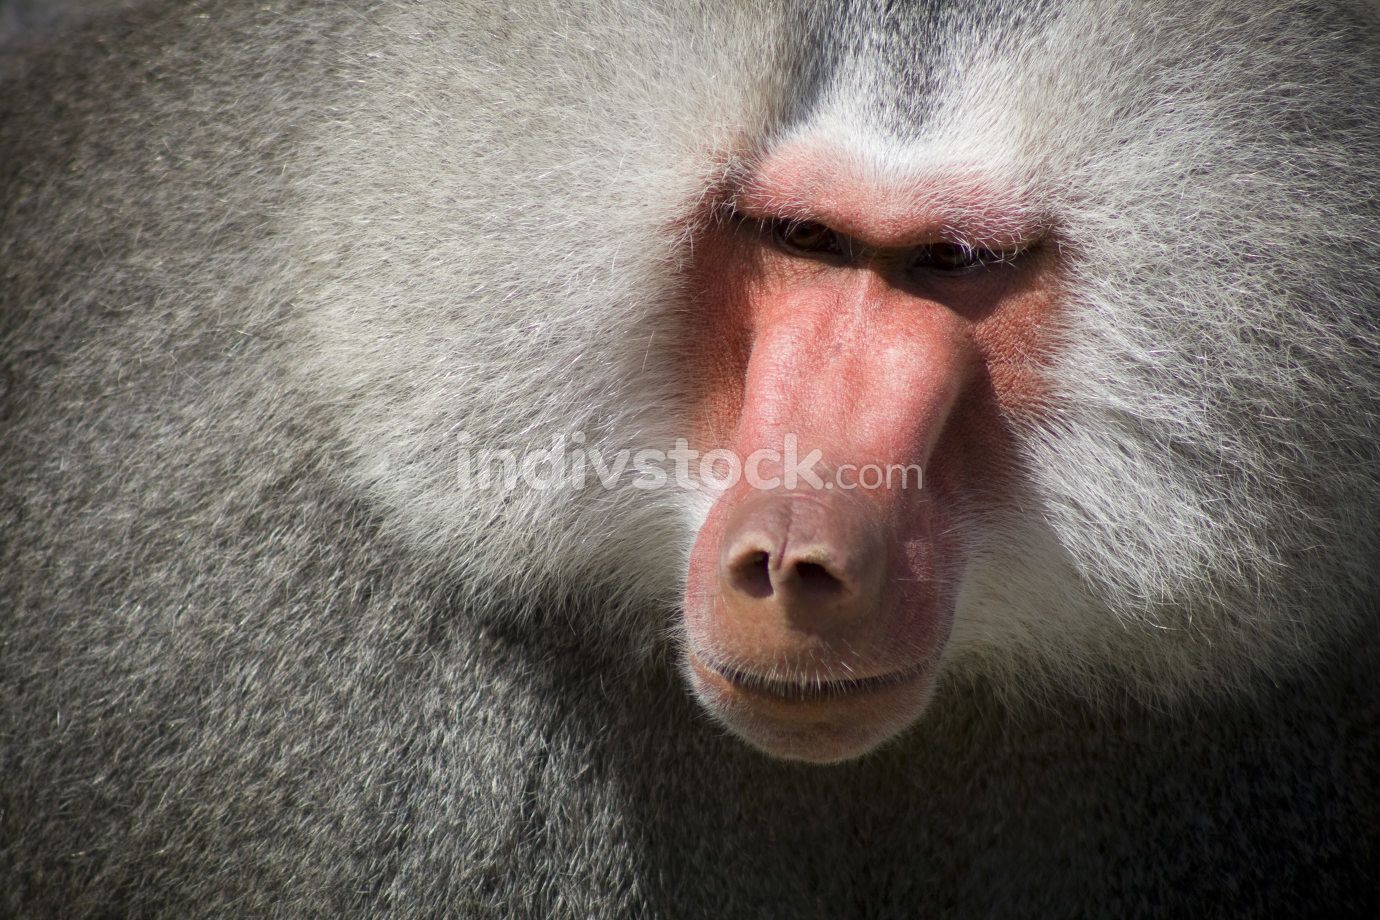 Baboon with dangerous looking (shooting at zoo)